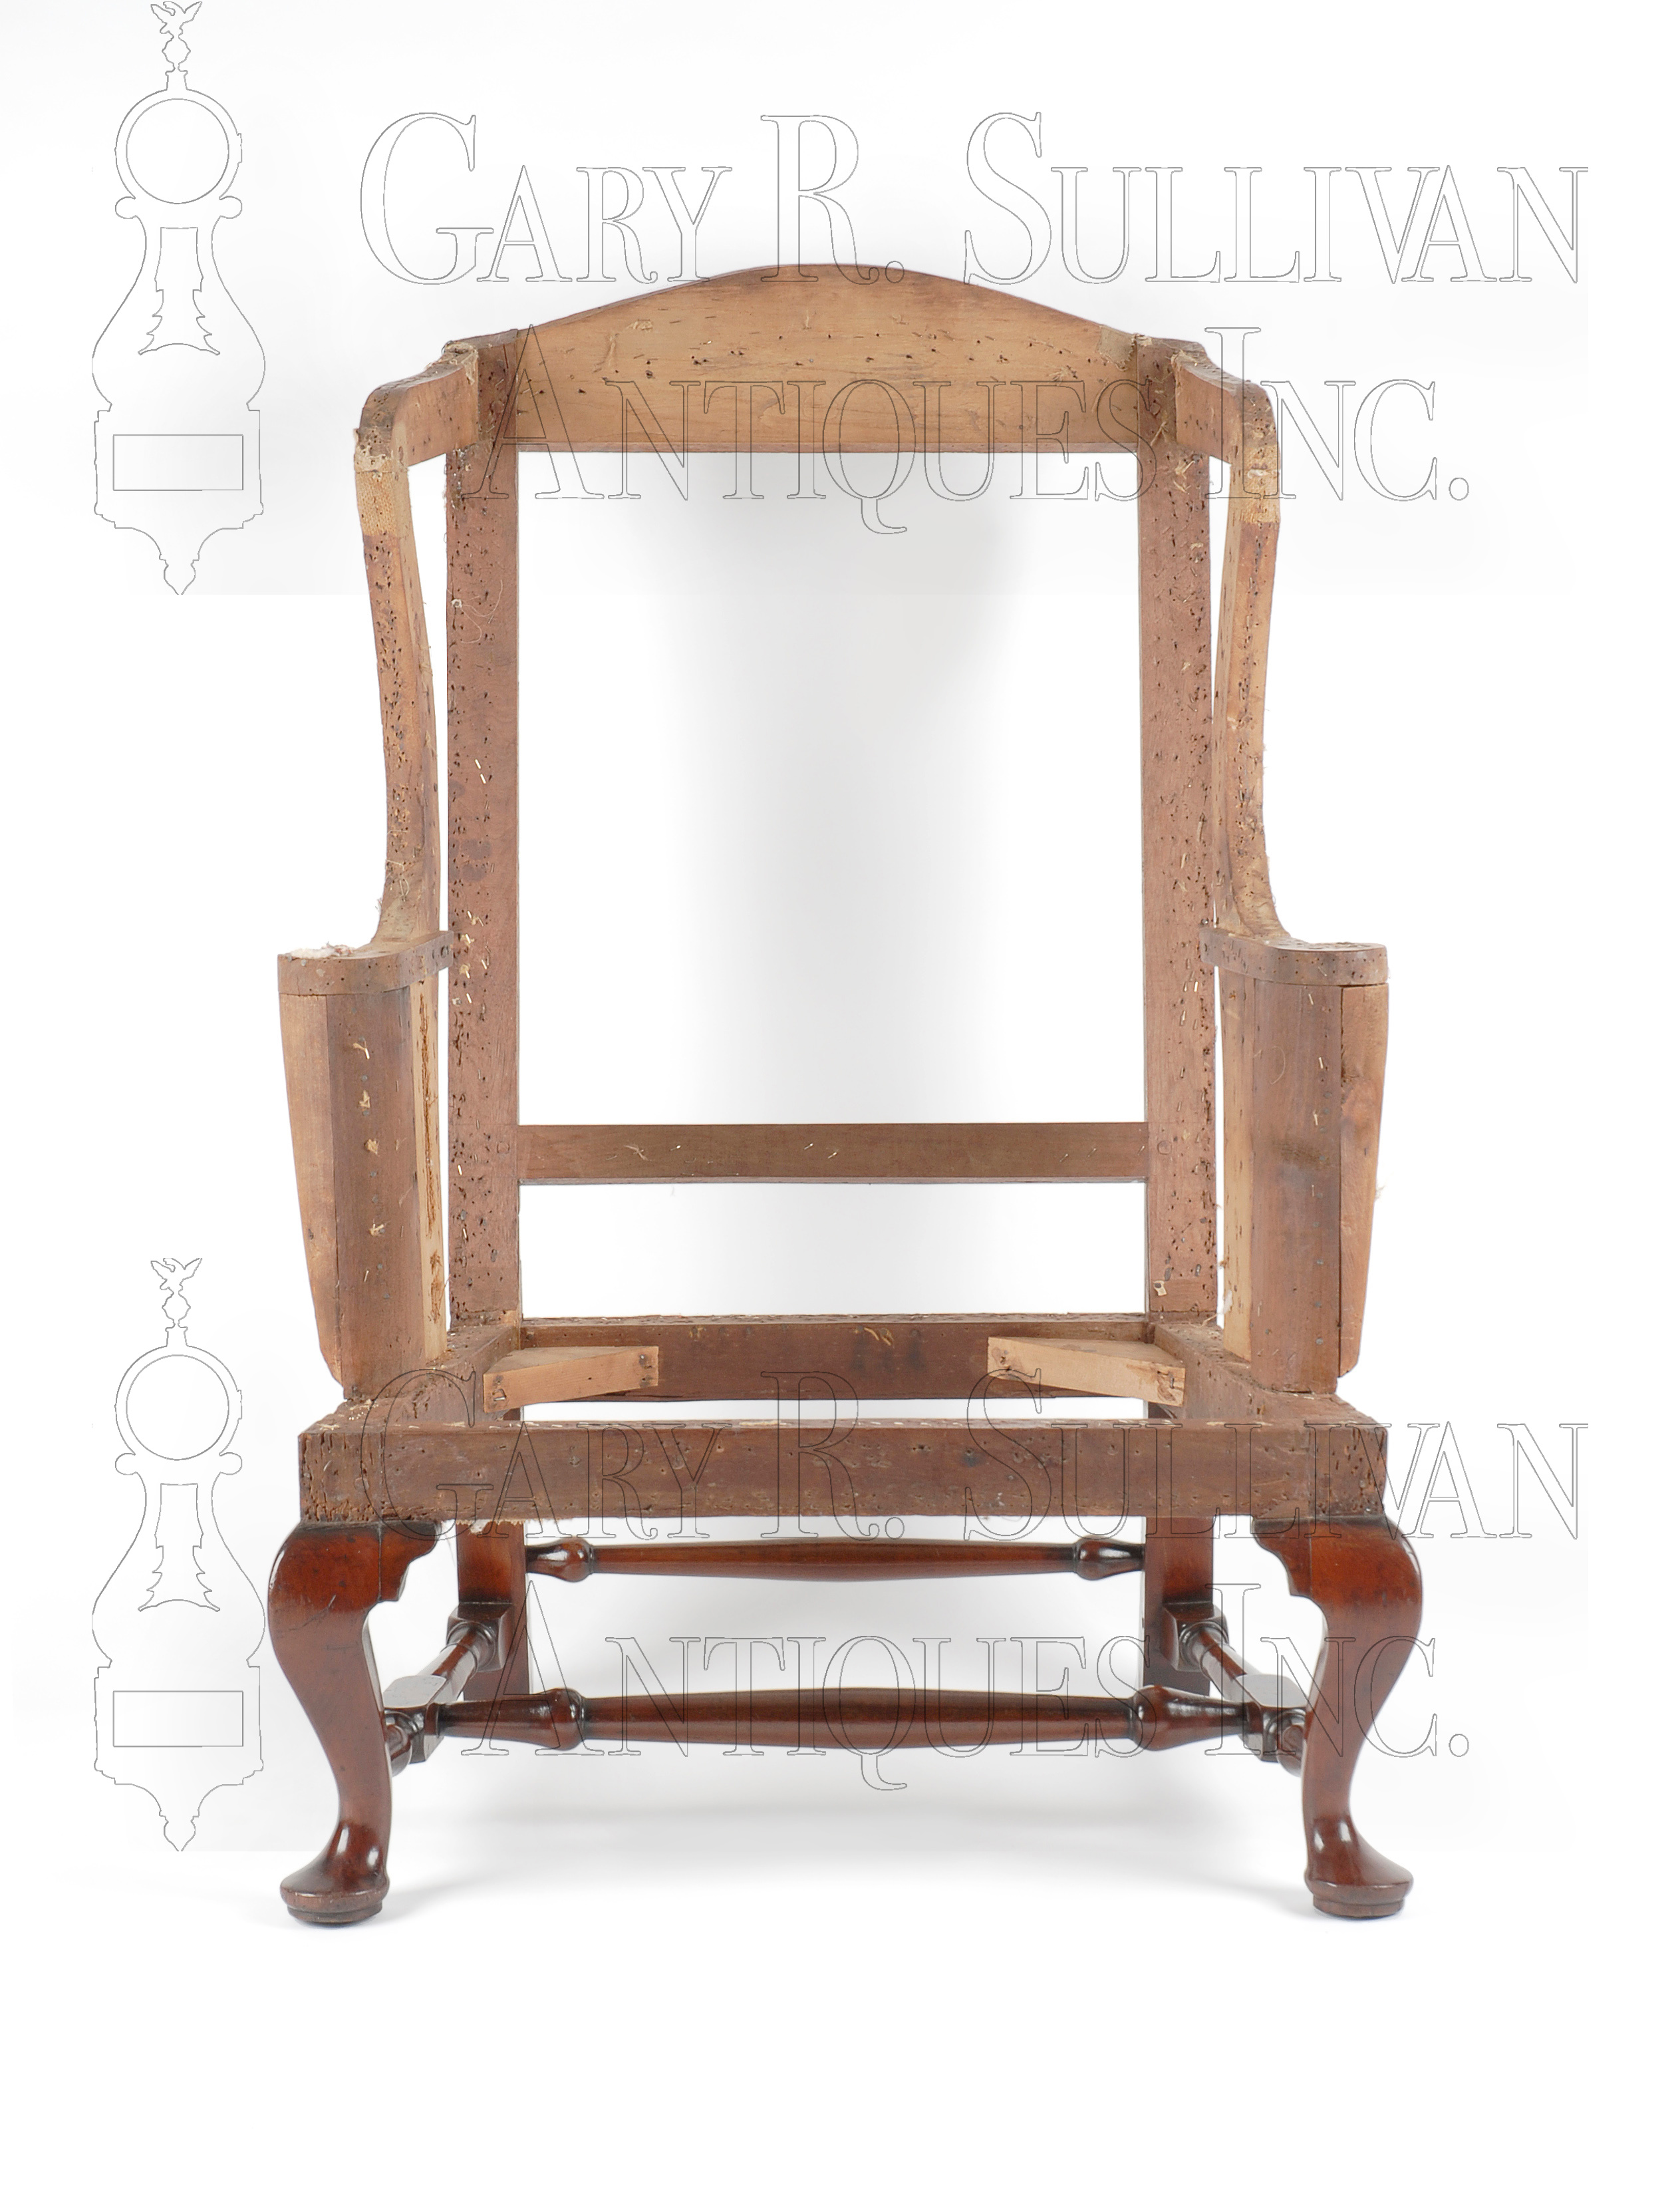 queen anne wing chair recliner replacement slings for winston patio chairs newport ri furniture 007054